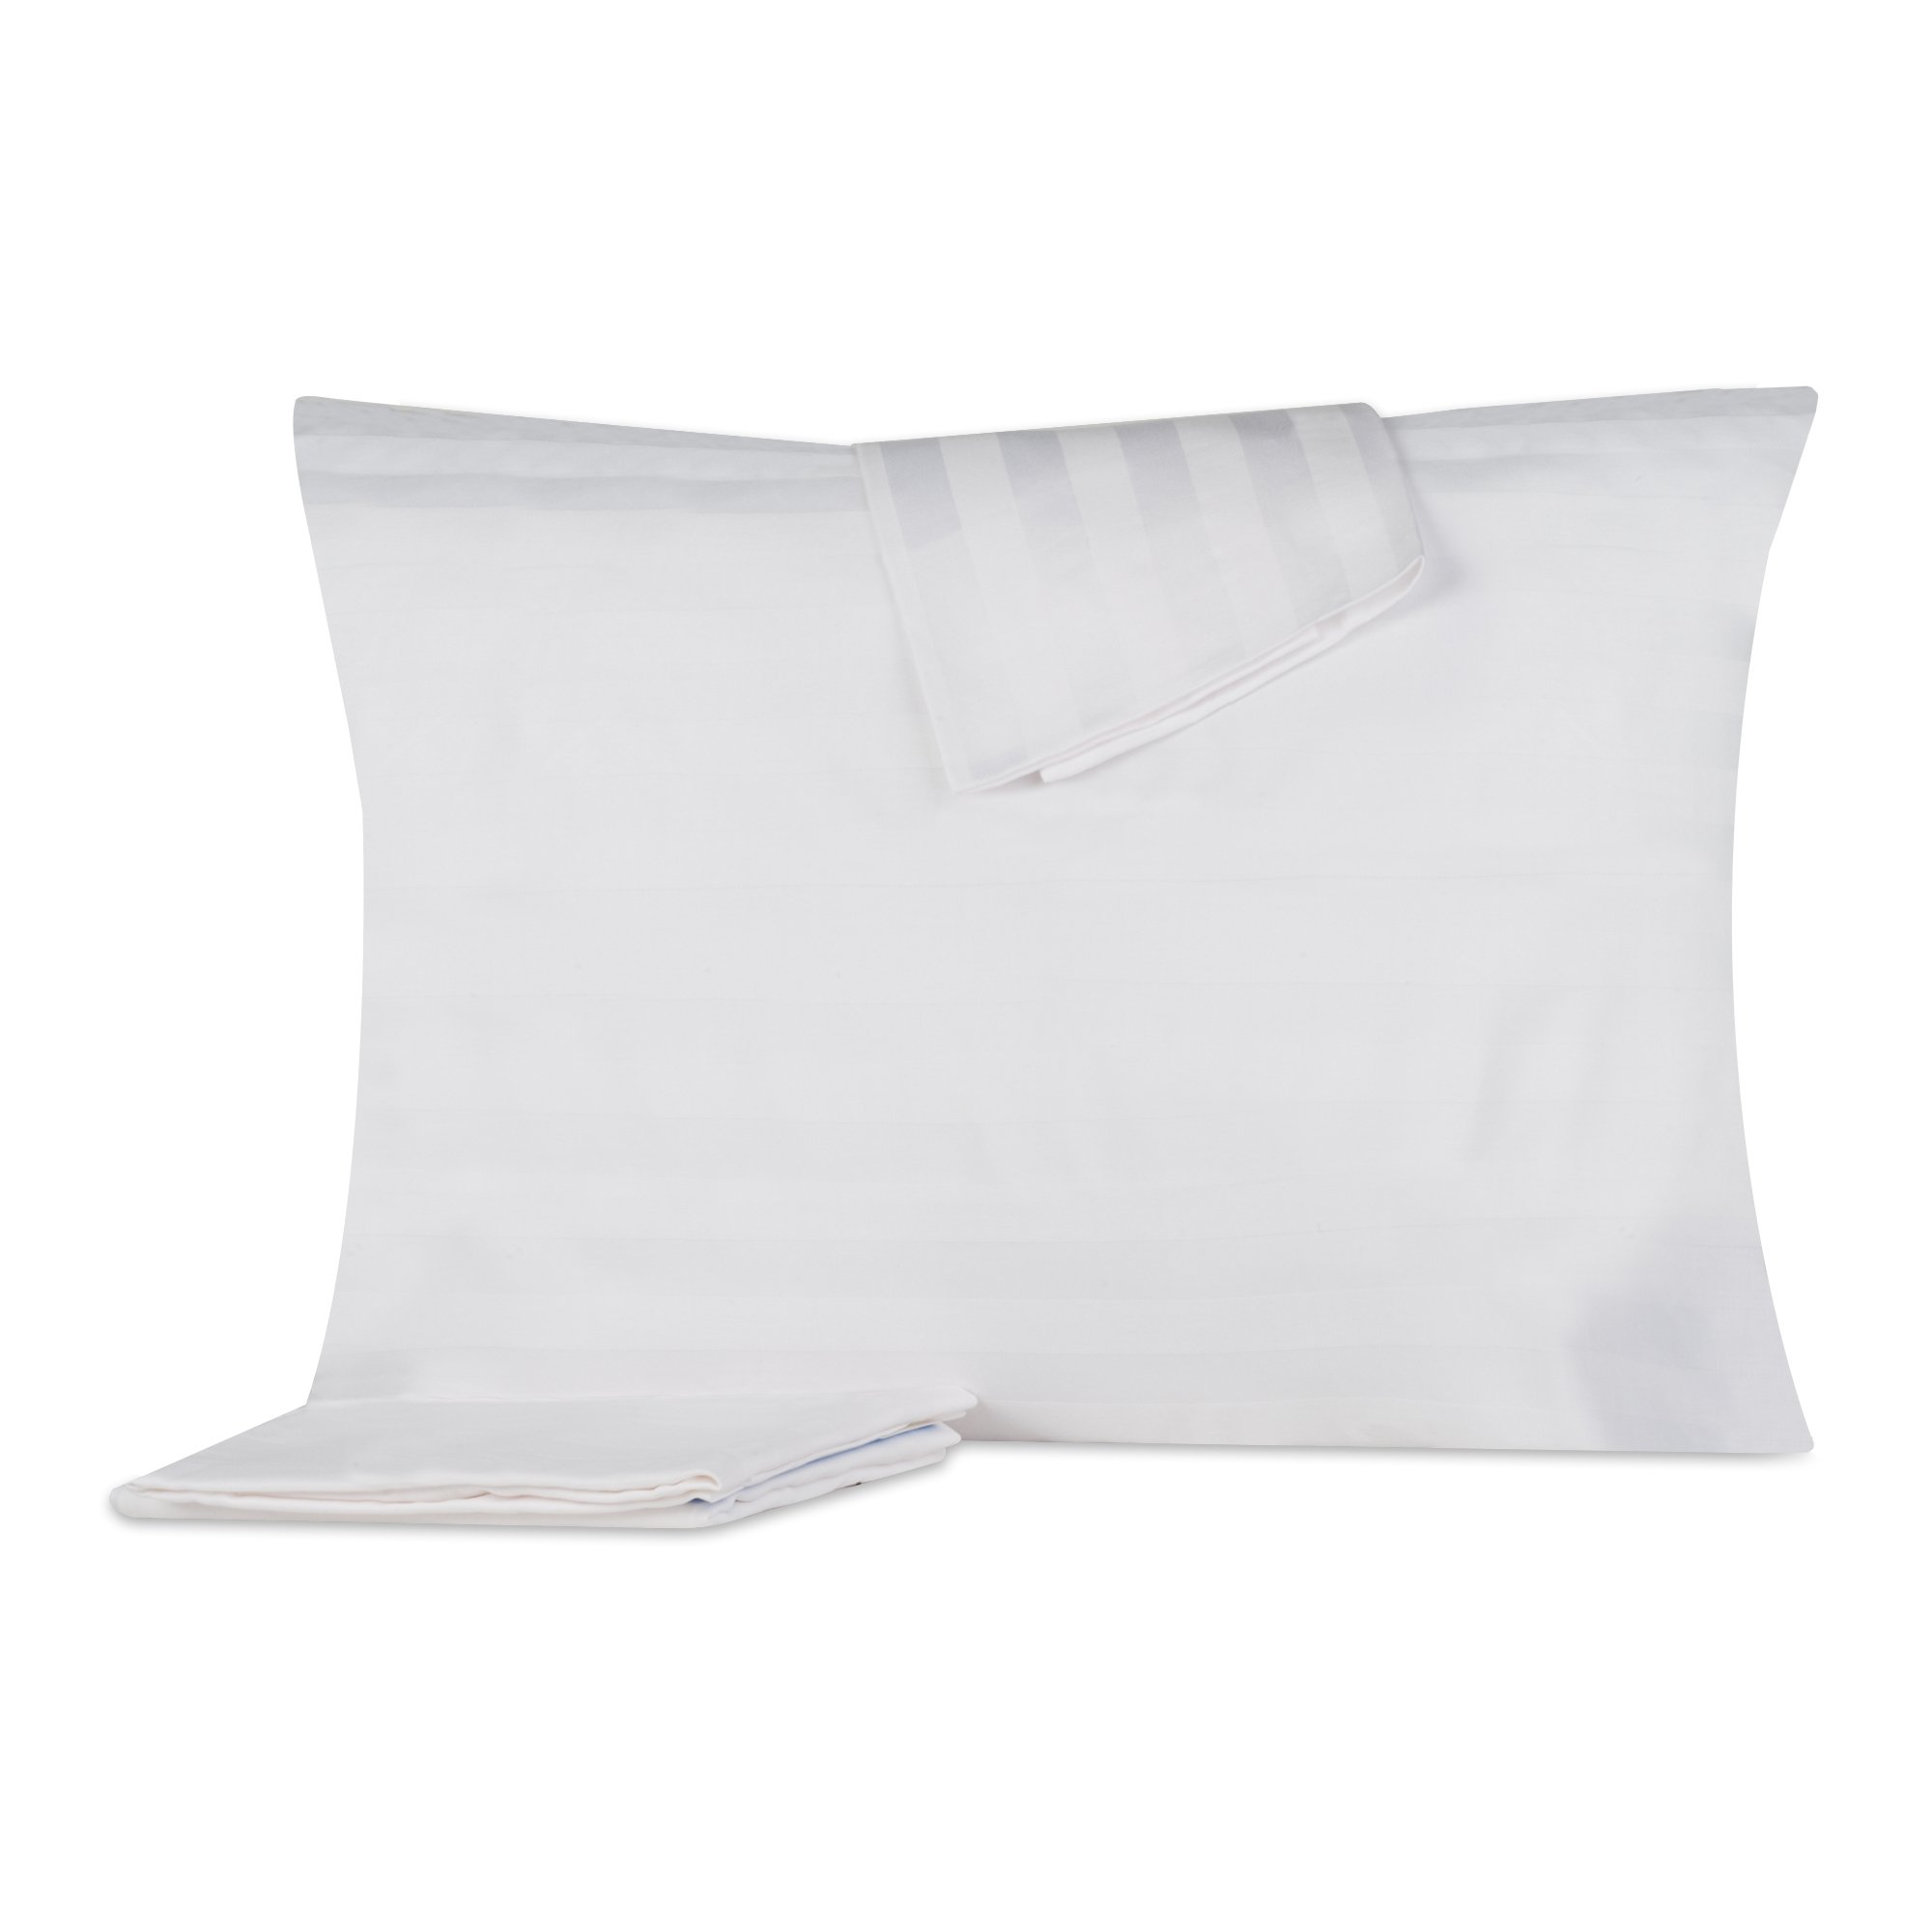 Royal Heritage Home Bed Care Zippered Pillow Protector, Anti-Microbial, Dust Mite and Bed Bug Resistant Hypoallergenic Pillow Cover - 4 Pack (Standard)